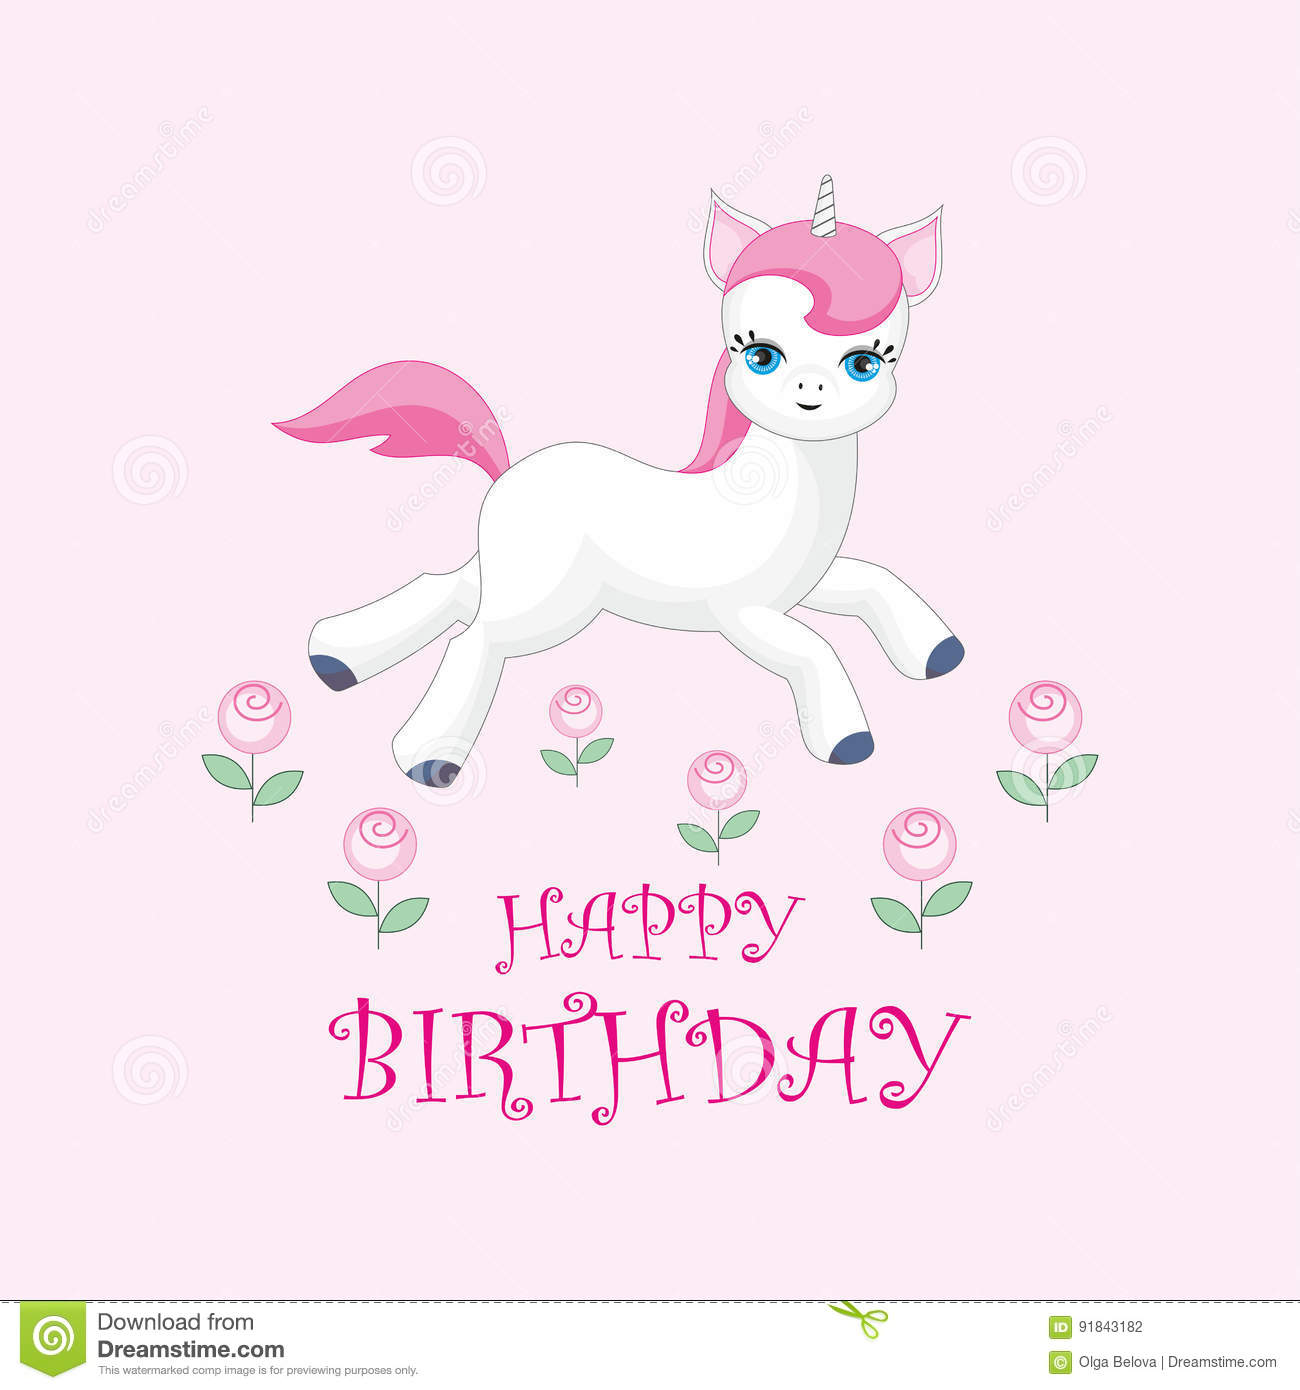 Happy Birthday Greeting Card With The Image Of Cute Unicorn Colorful Vector Illustration